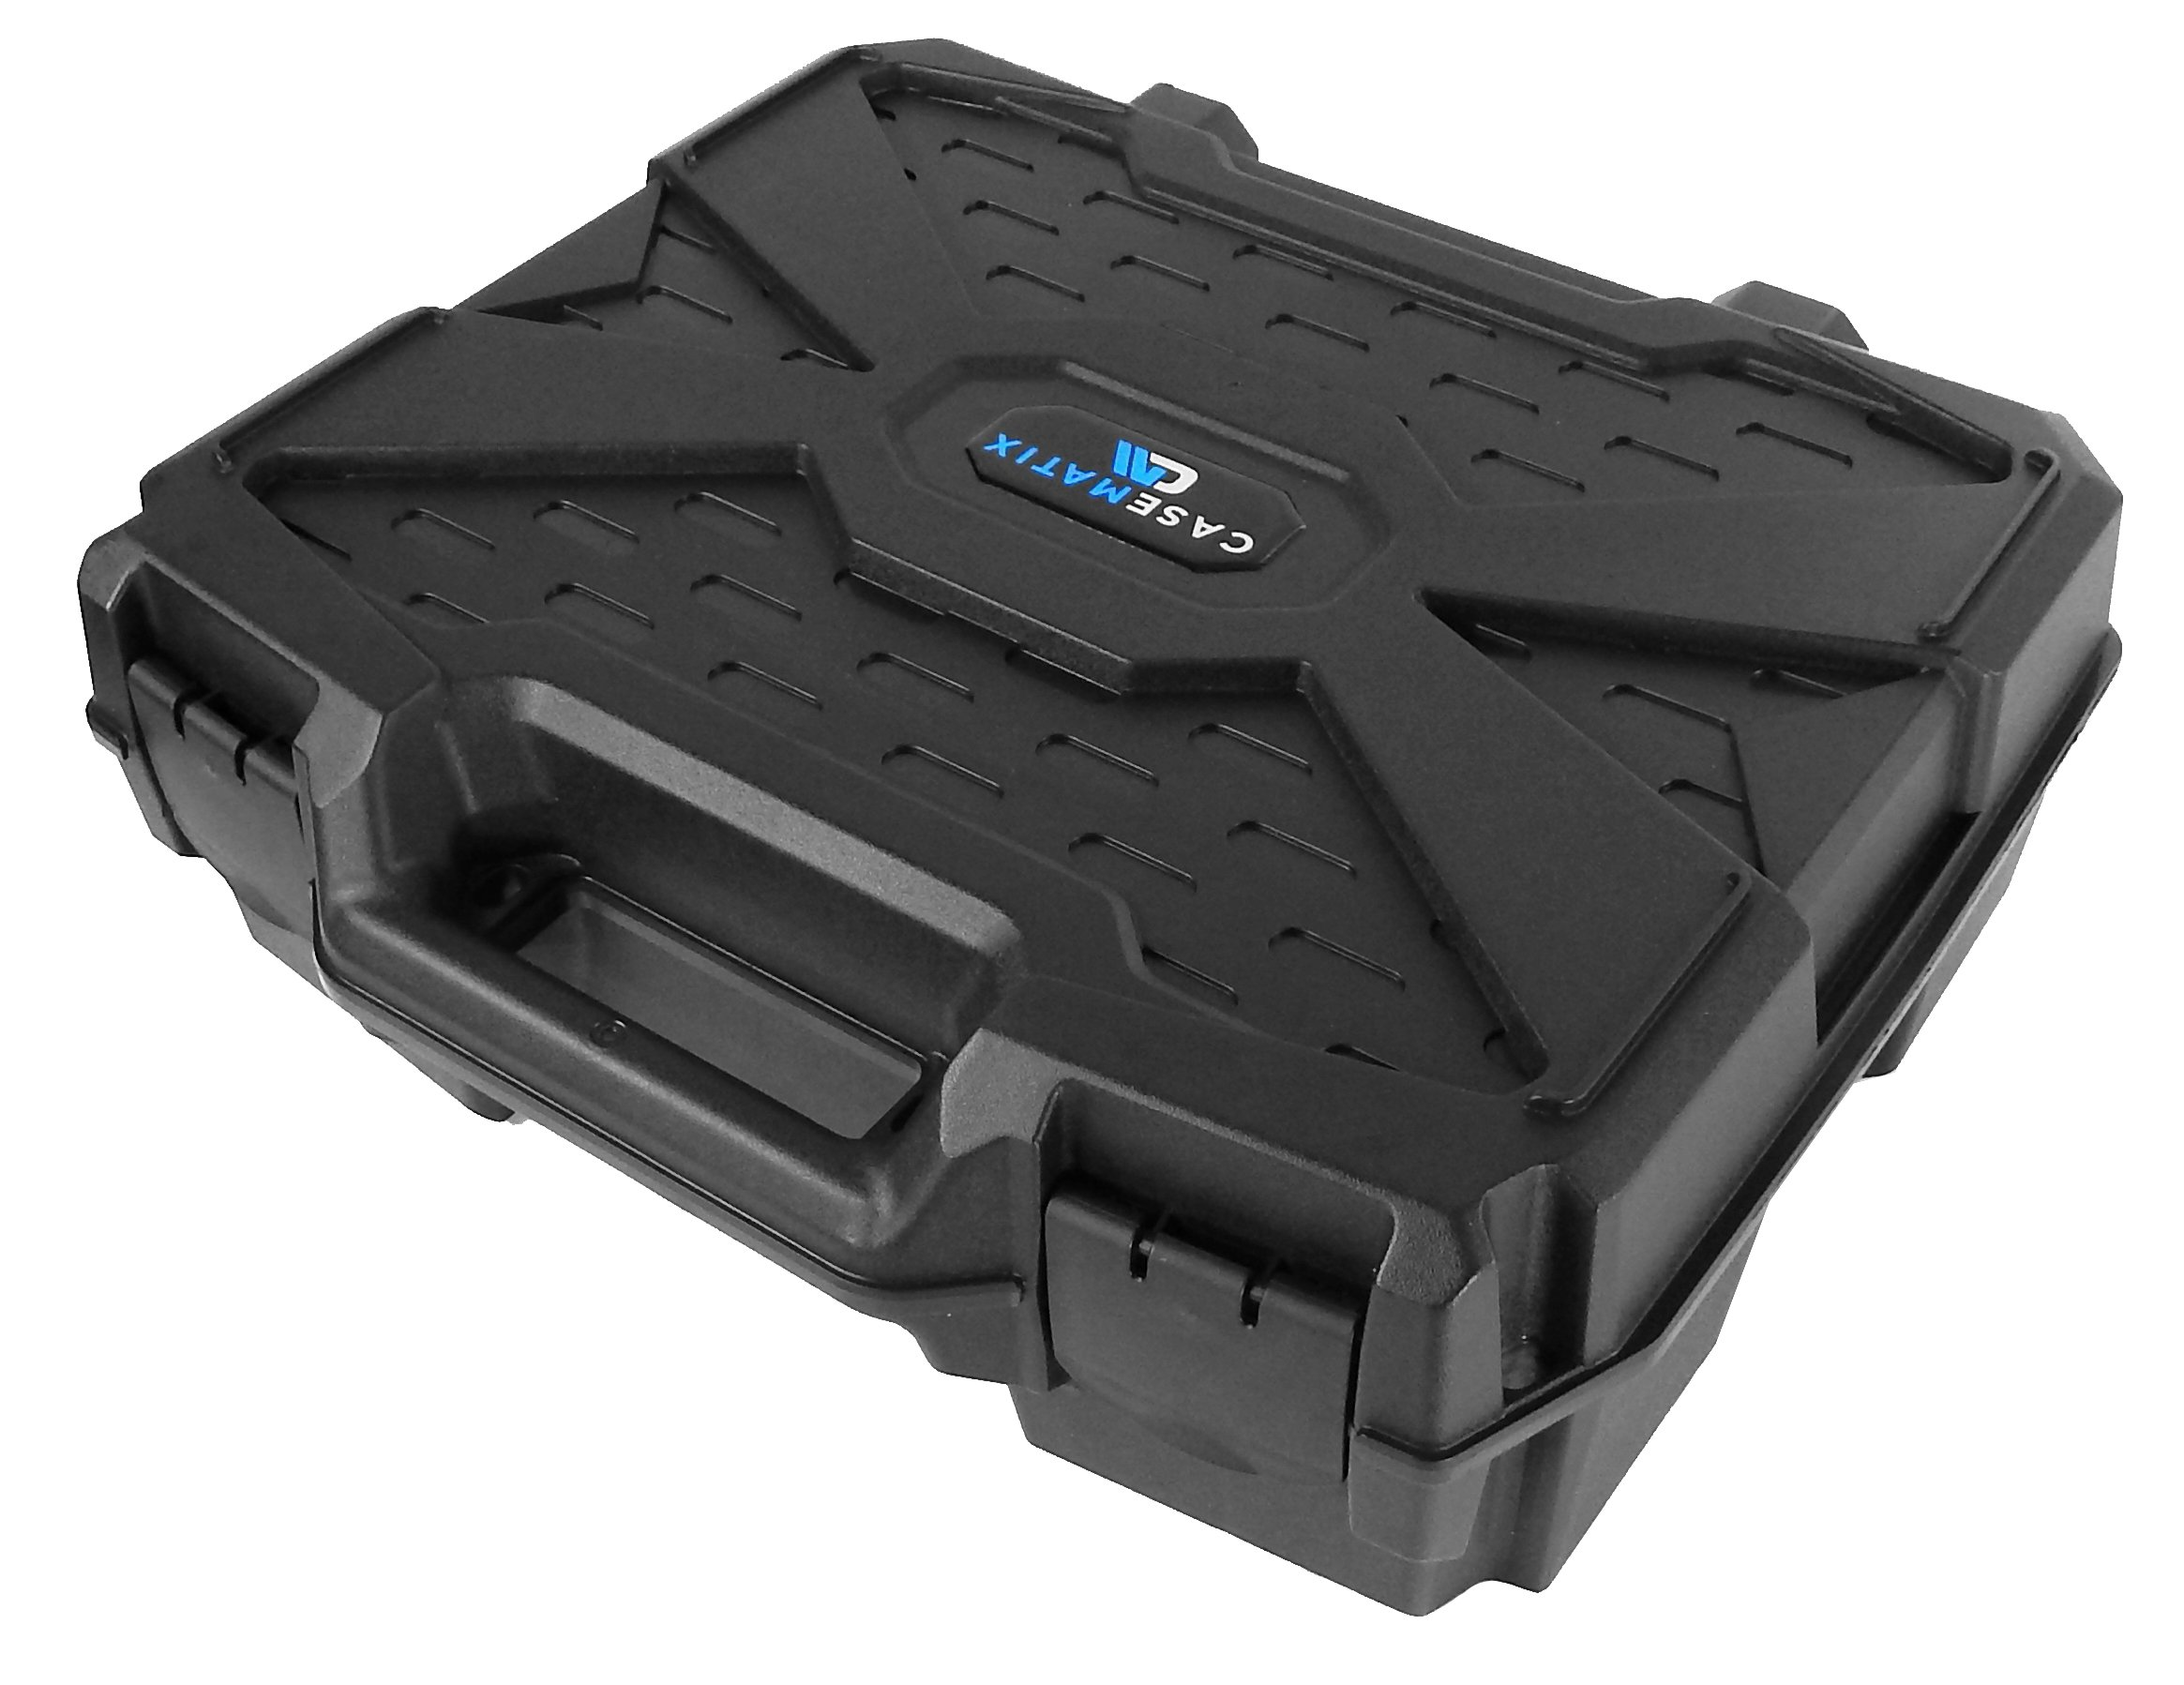 CASEMATIX Deluxe DJ Hard Travel Carrying Case (17'') for Remix Station or Sub Controller and Accessories - Fits Pioneer DDJ-SP1 / RMX-1000 / RMX-500